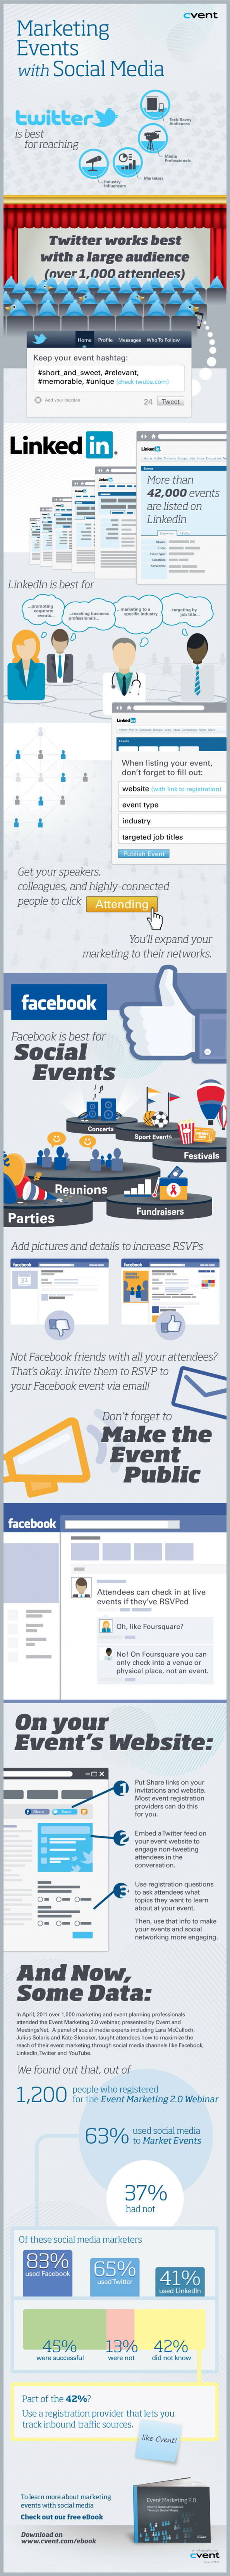 Marketing Events with Social Media Infographic